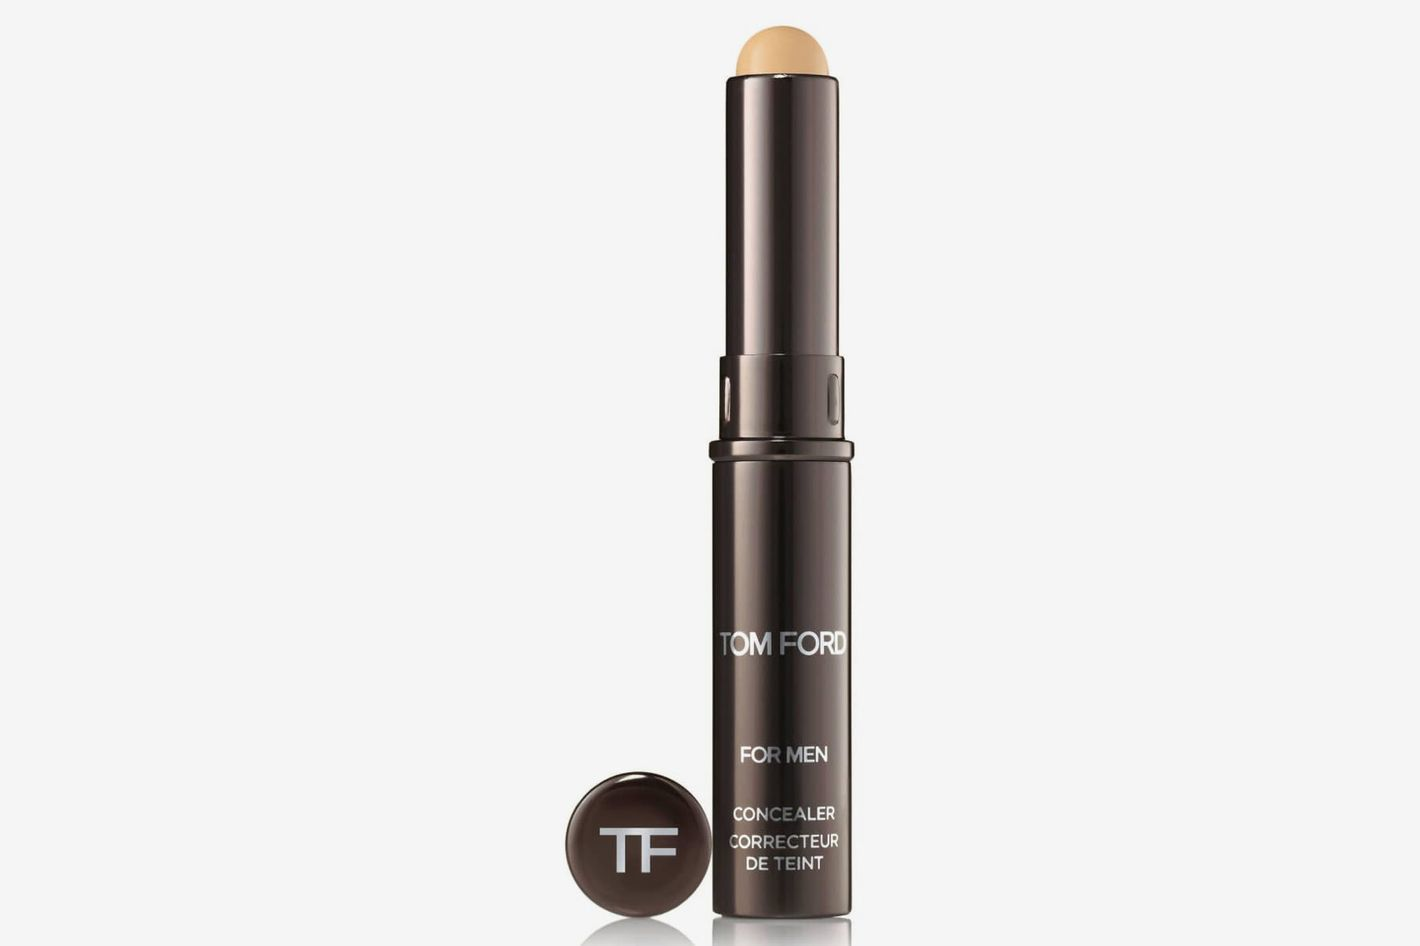 The Best Concealers and Makeup for Men 2018